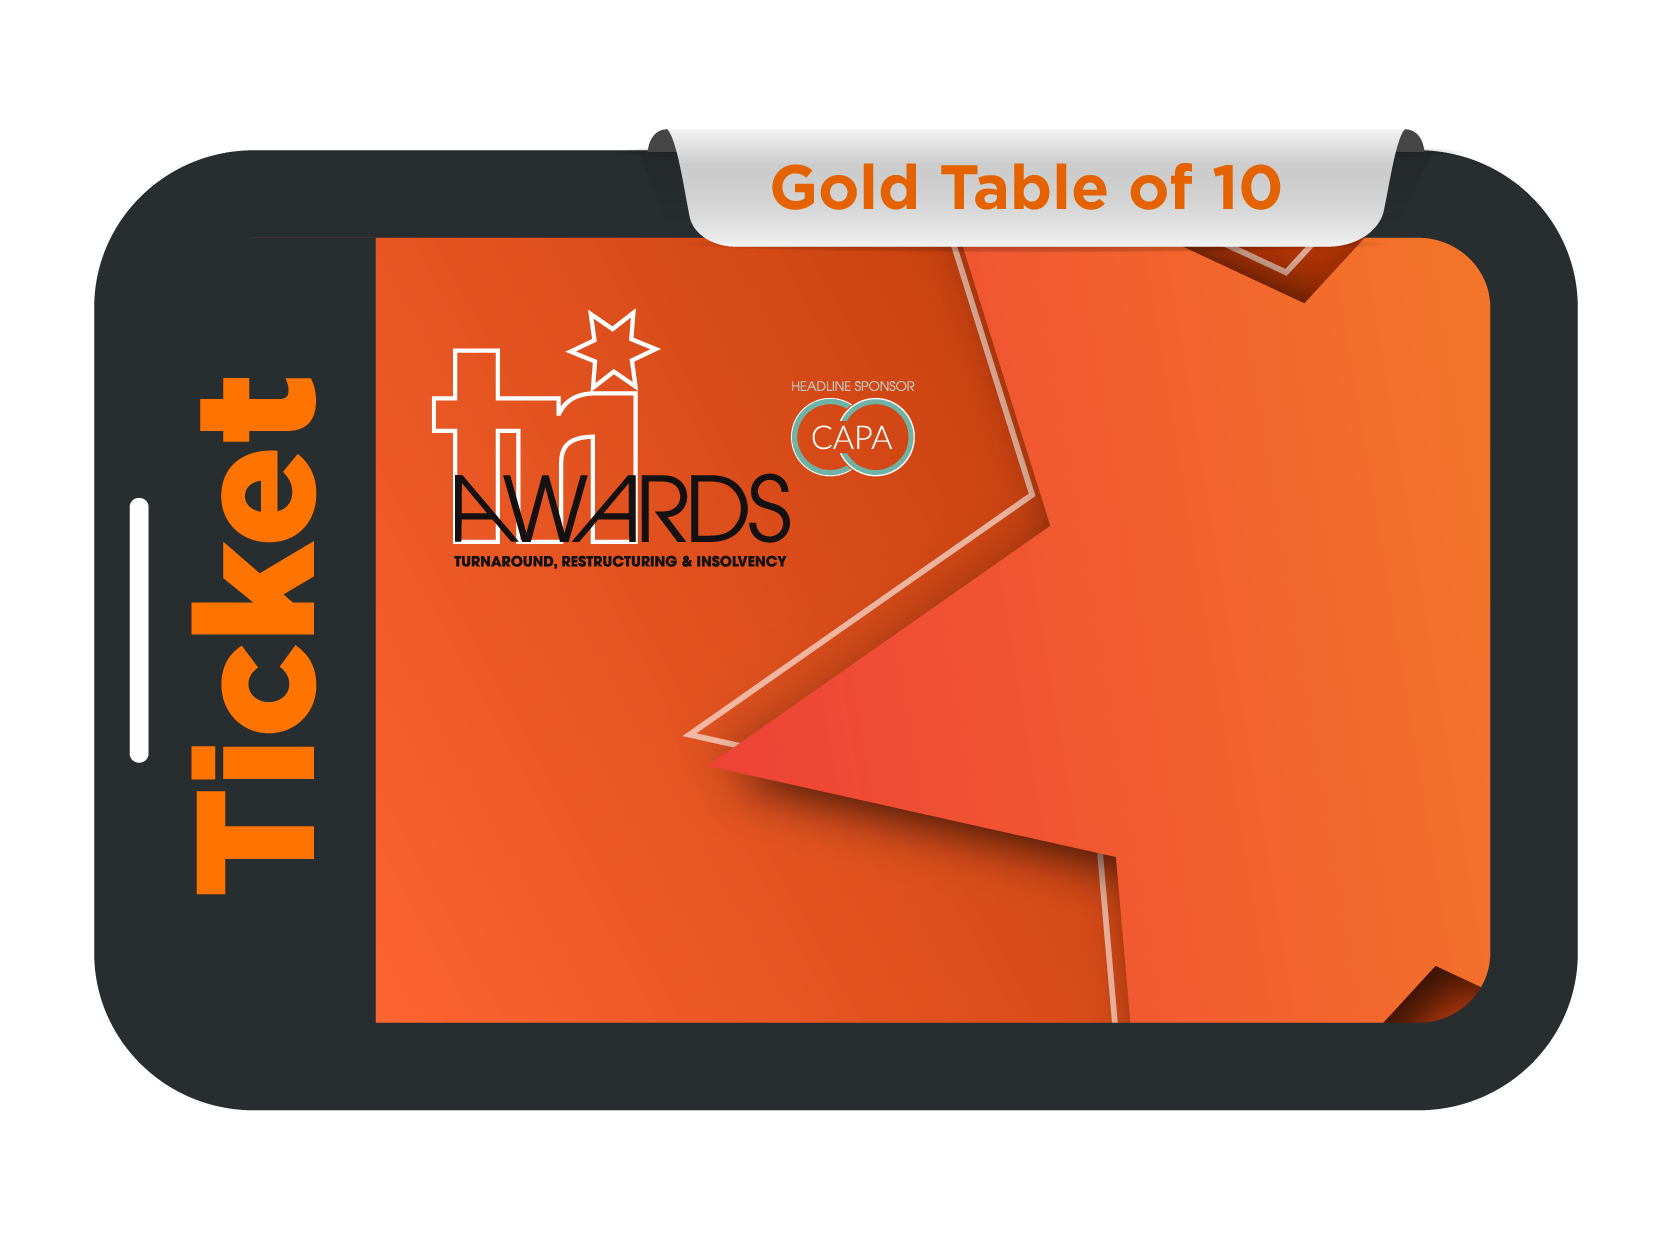 Gold Table of 10 - TRI Awards 2021